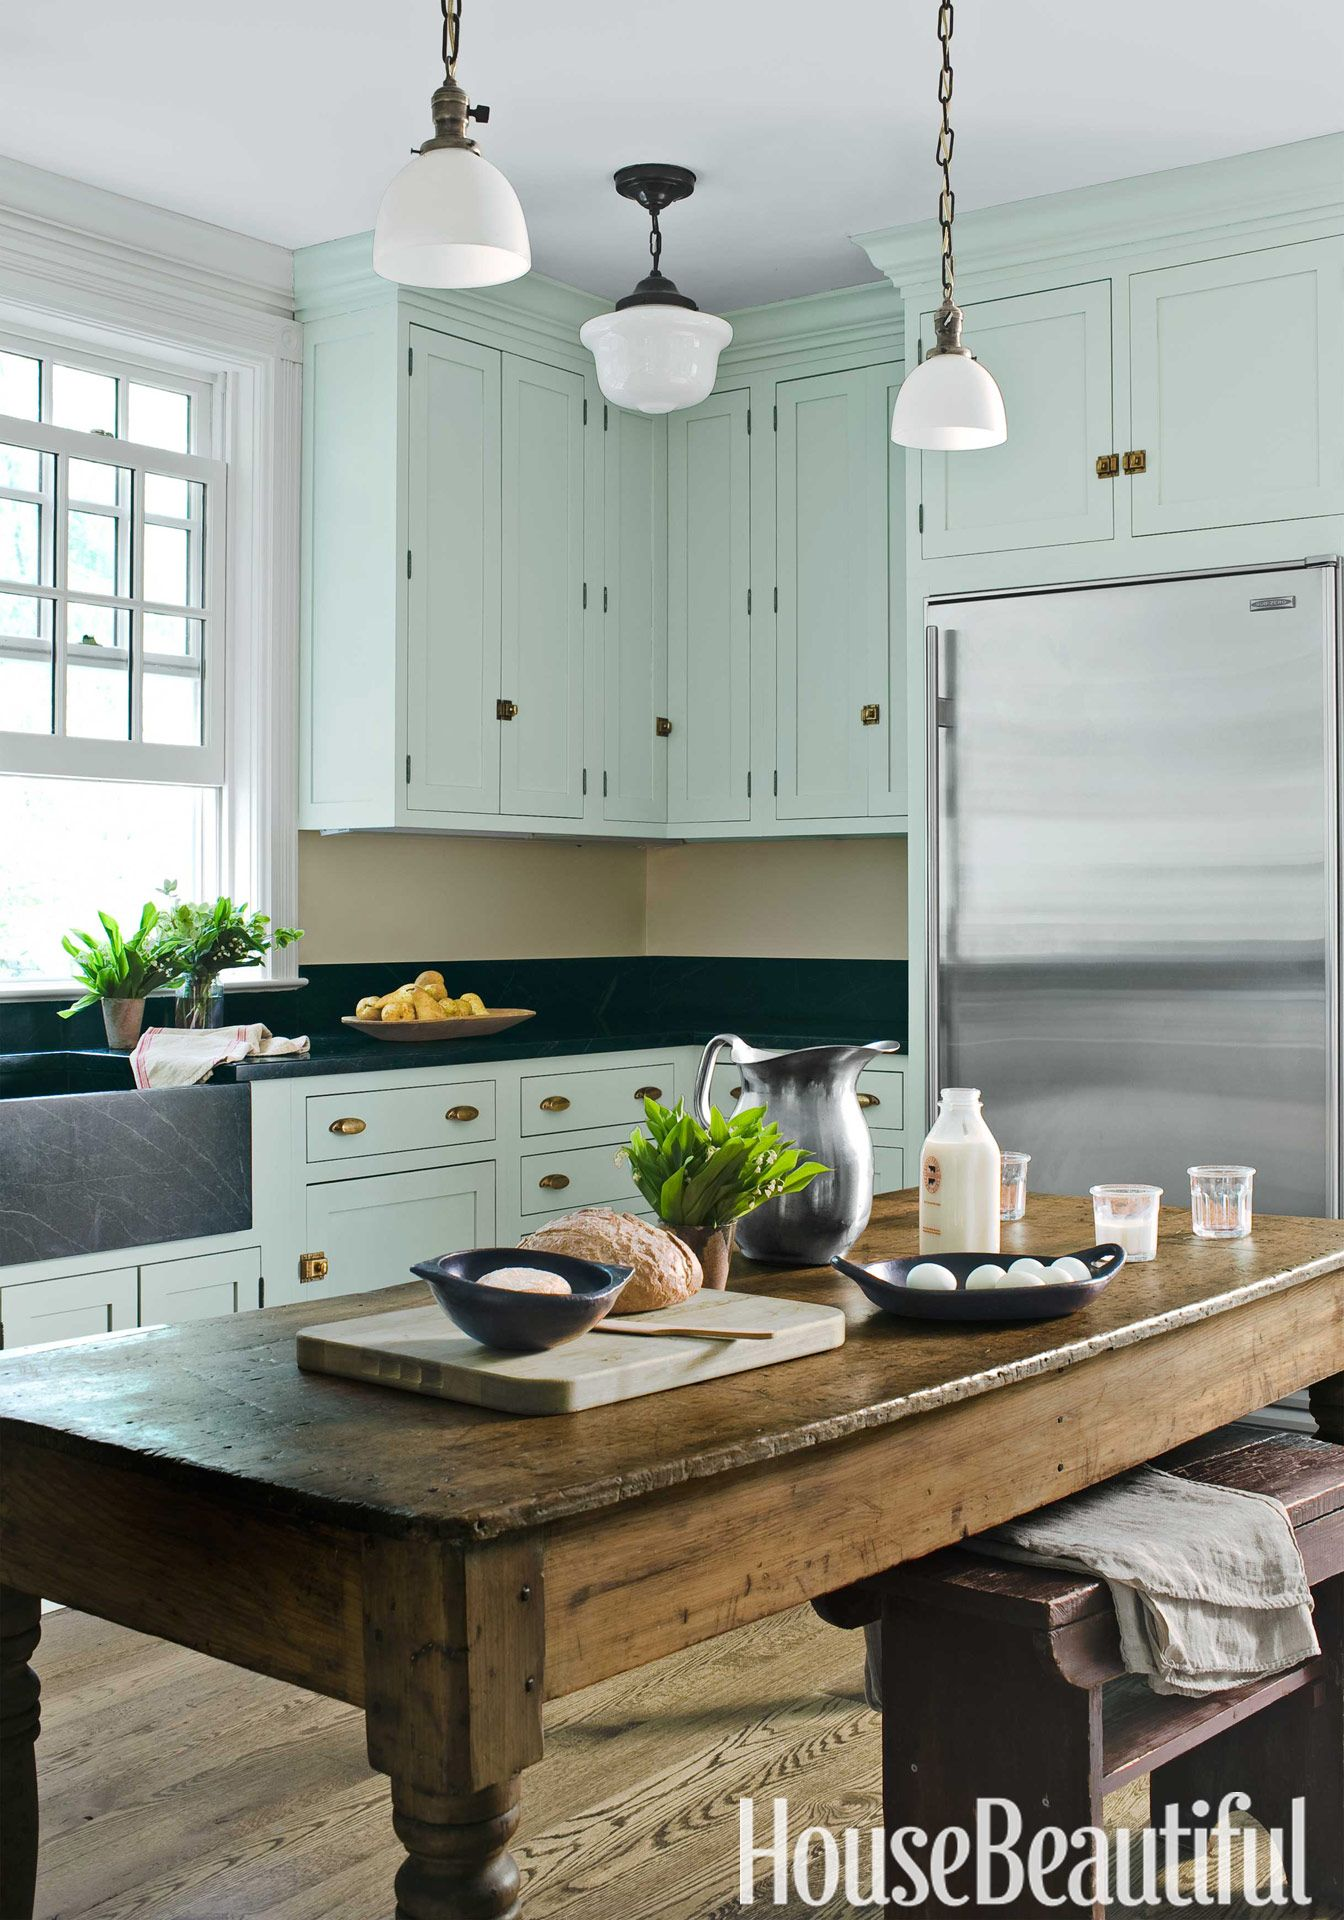 Charmant Mint Green Kitchen With Farmhouse Table